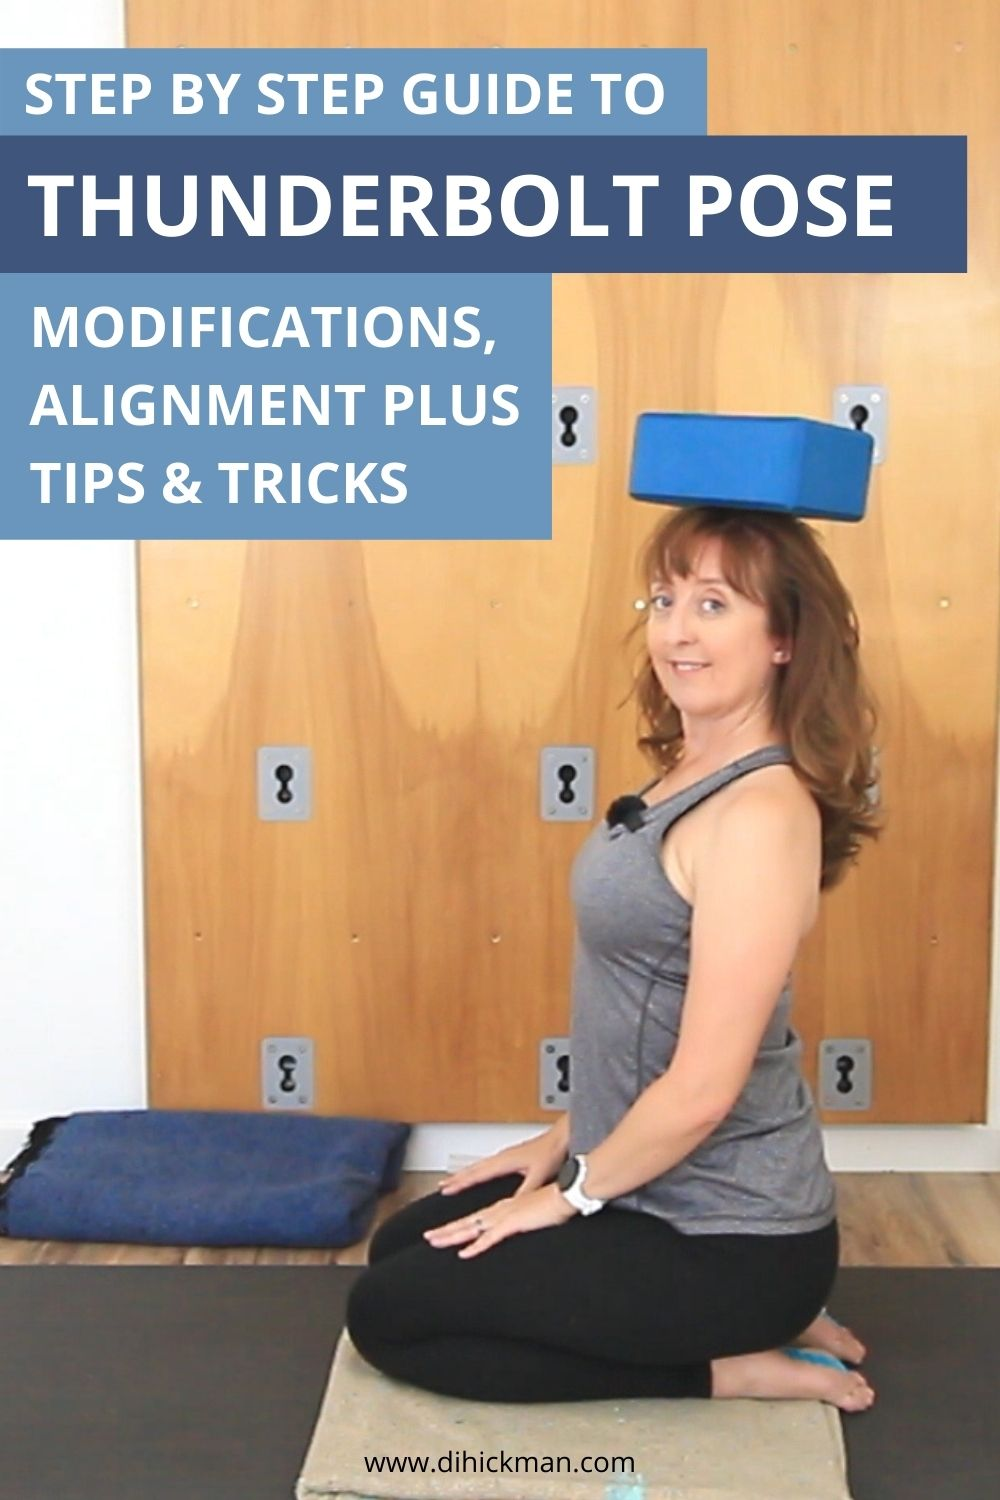 Step by step guide to thunderbolt pose, modifications, alignment, plus tips & tricks